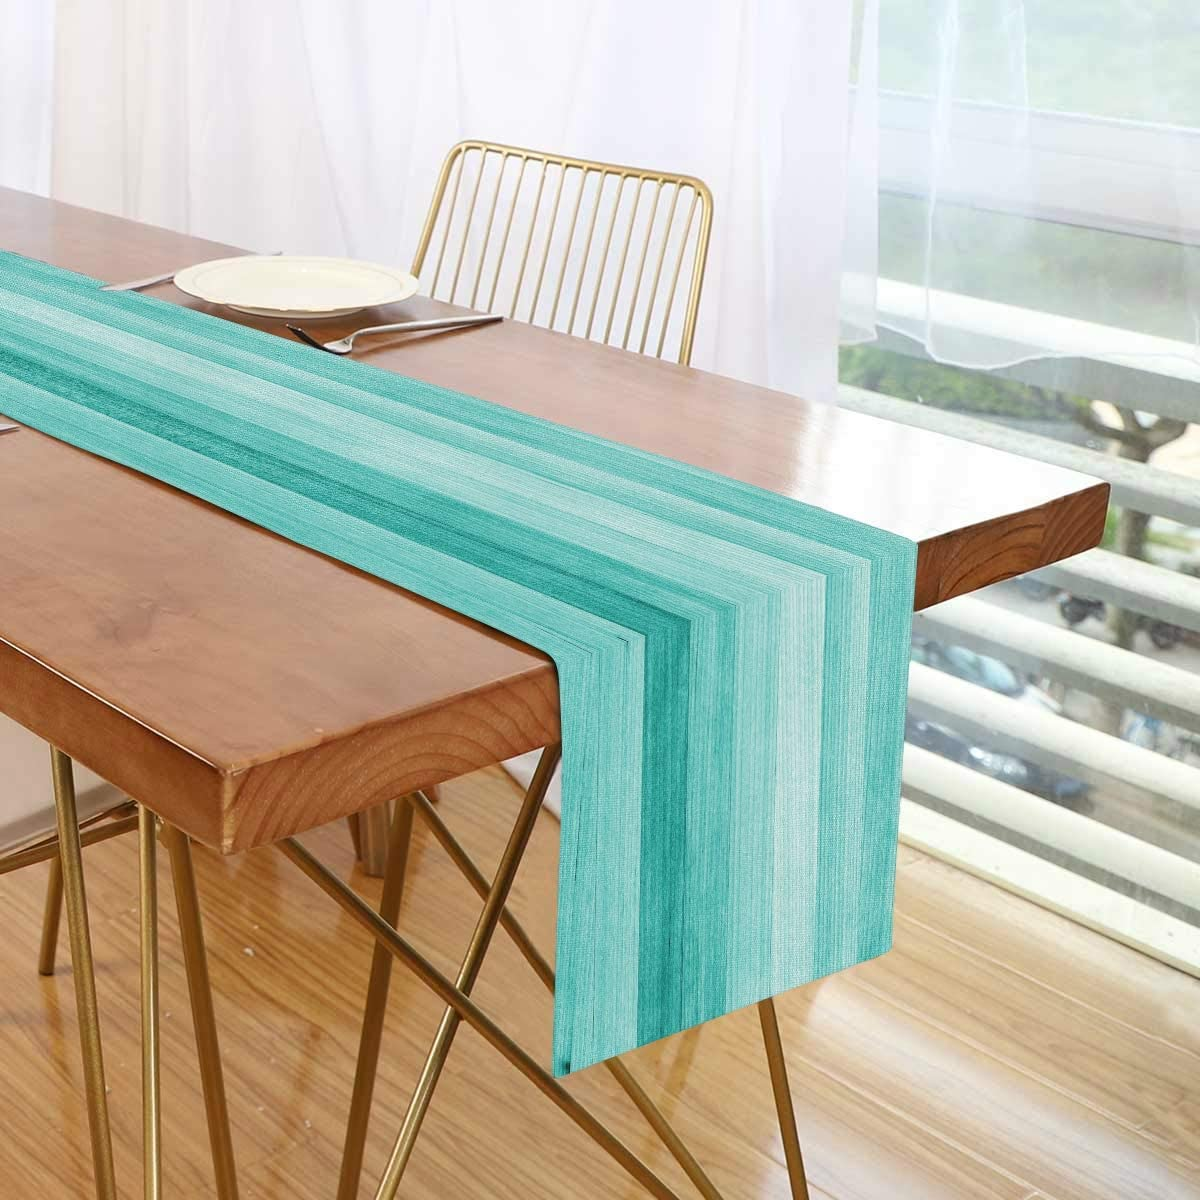 SUABO Teal Turquoise Green Wood Table Runner, Table Runners Polyester Cotton for Party Event Festival Decoration